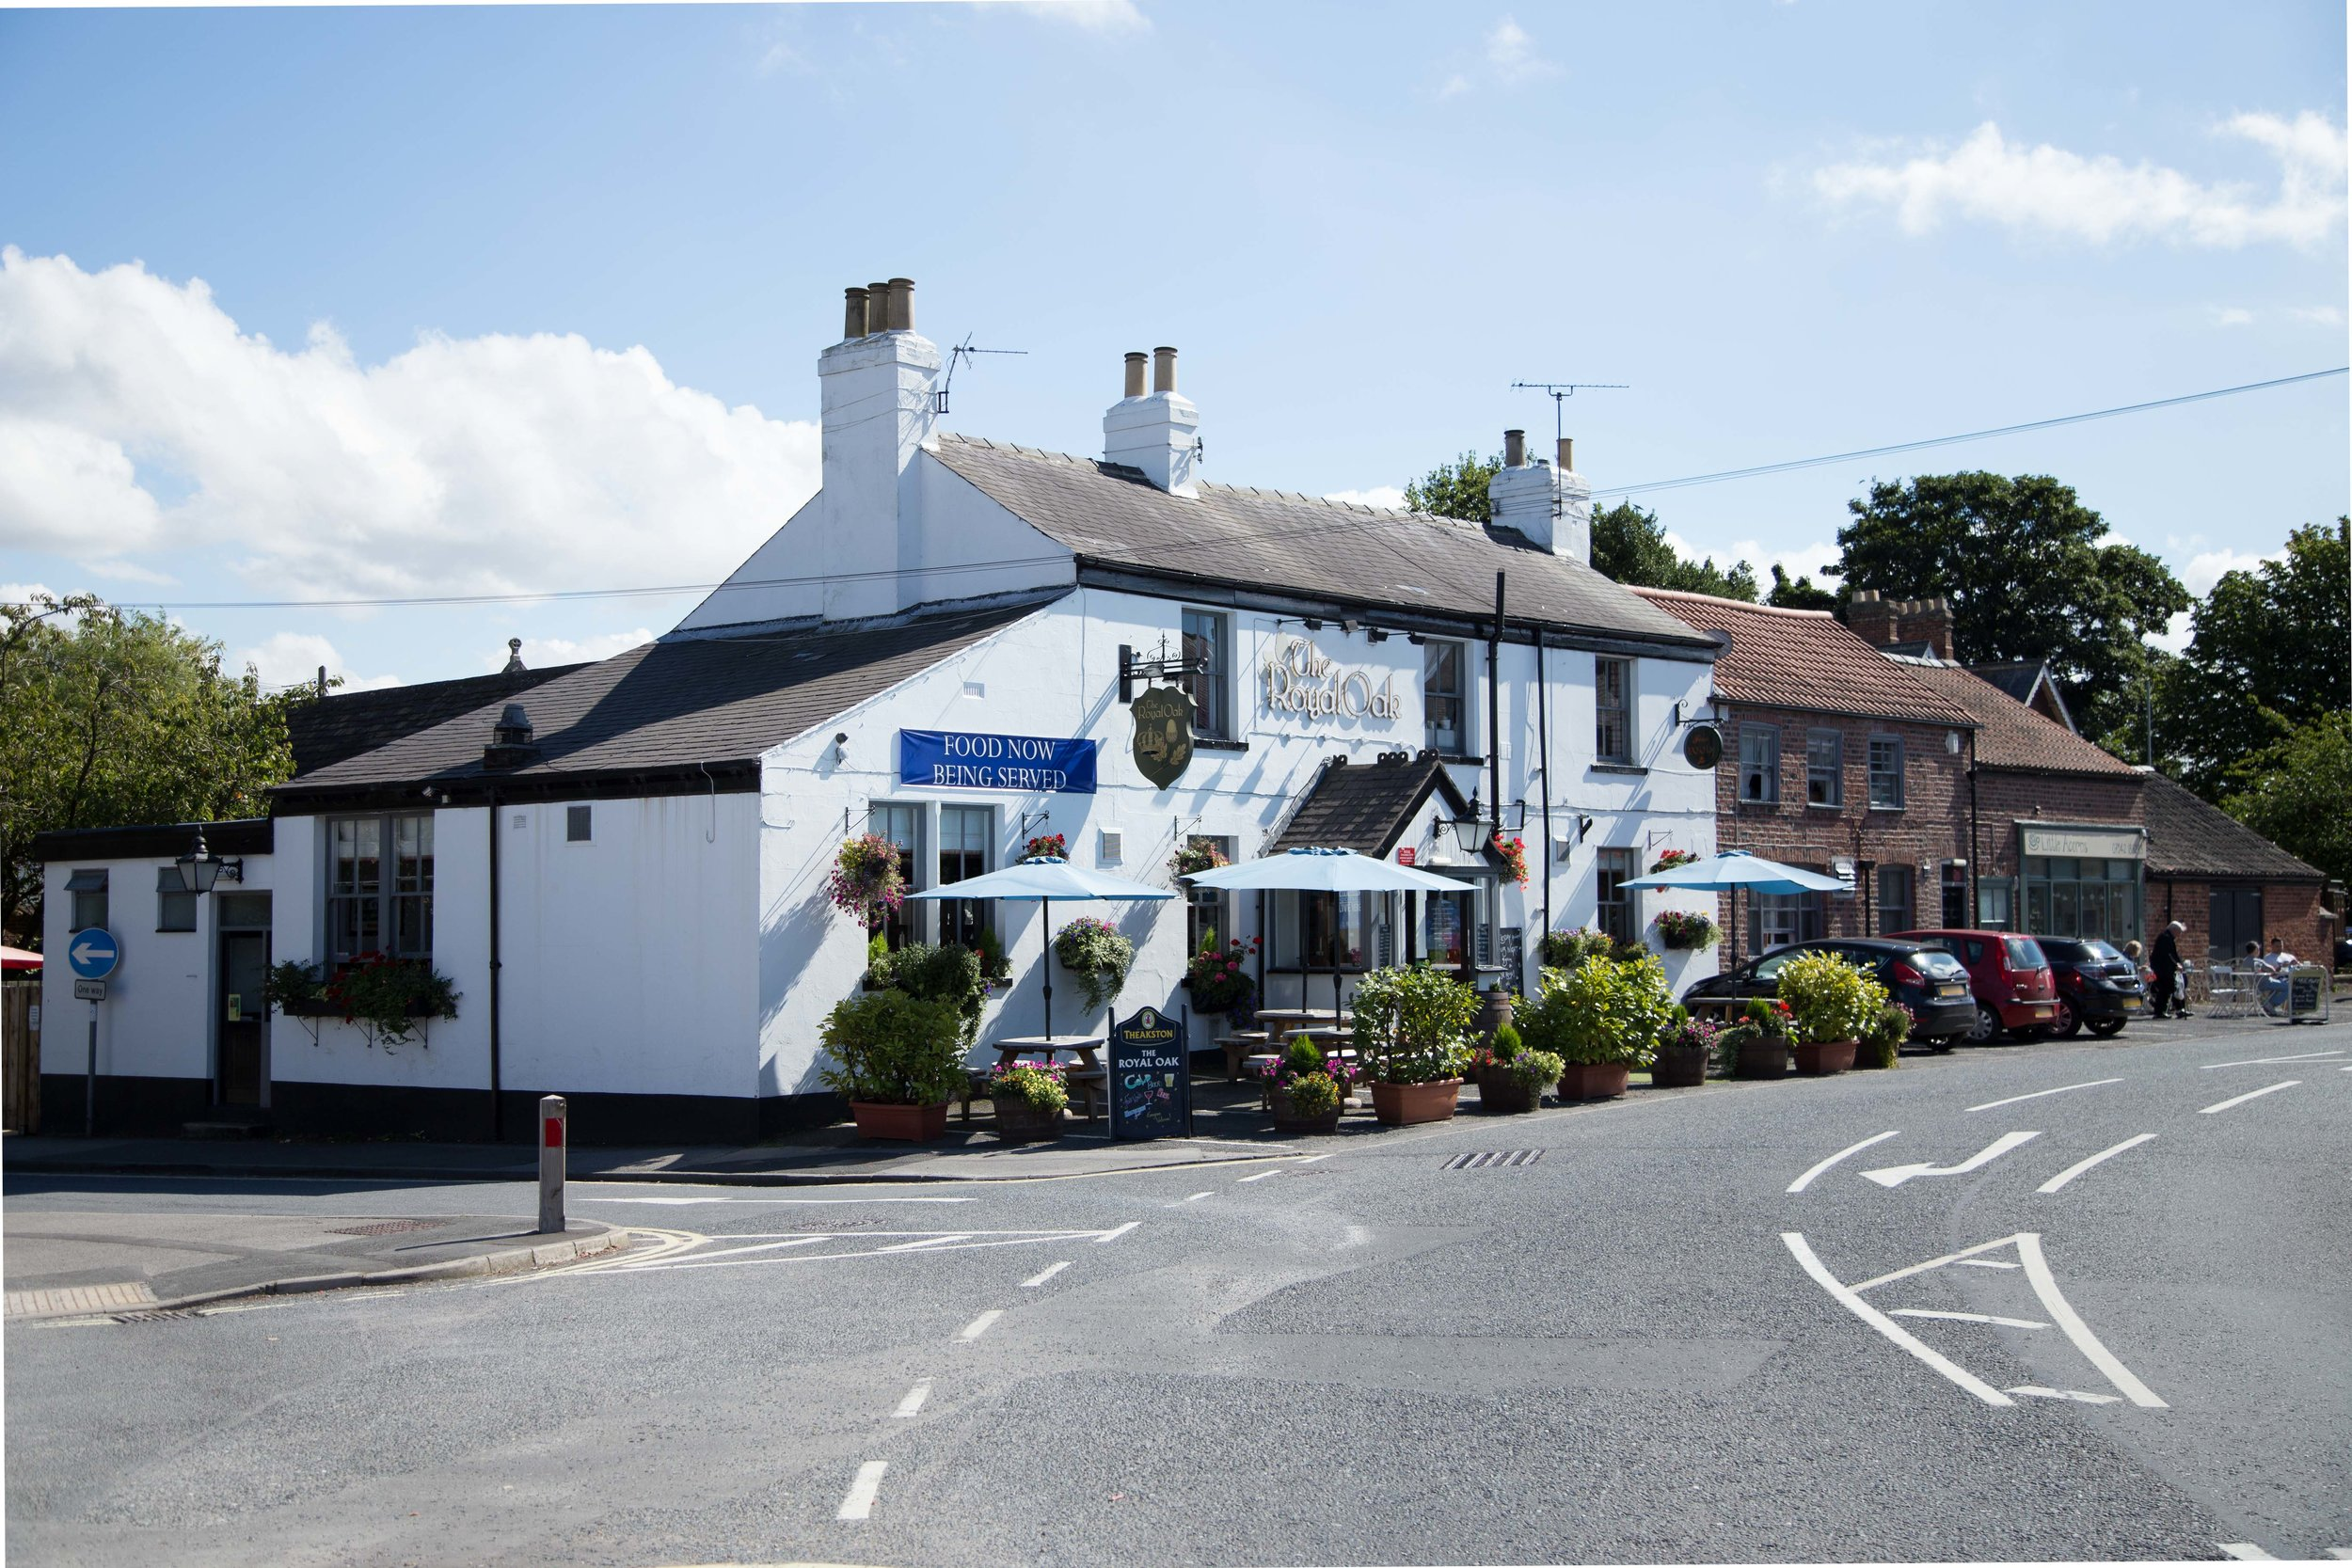 The Royal Oak Copmanthorpe  is located just off the A64 between York and Leeds, in the heart of the beautiful village of Copmanthorpe.